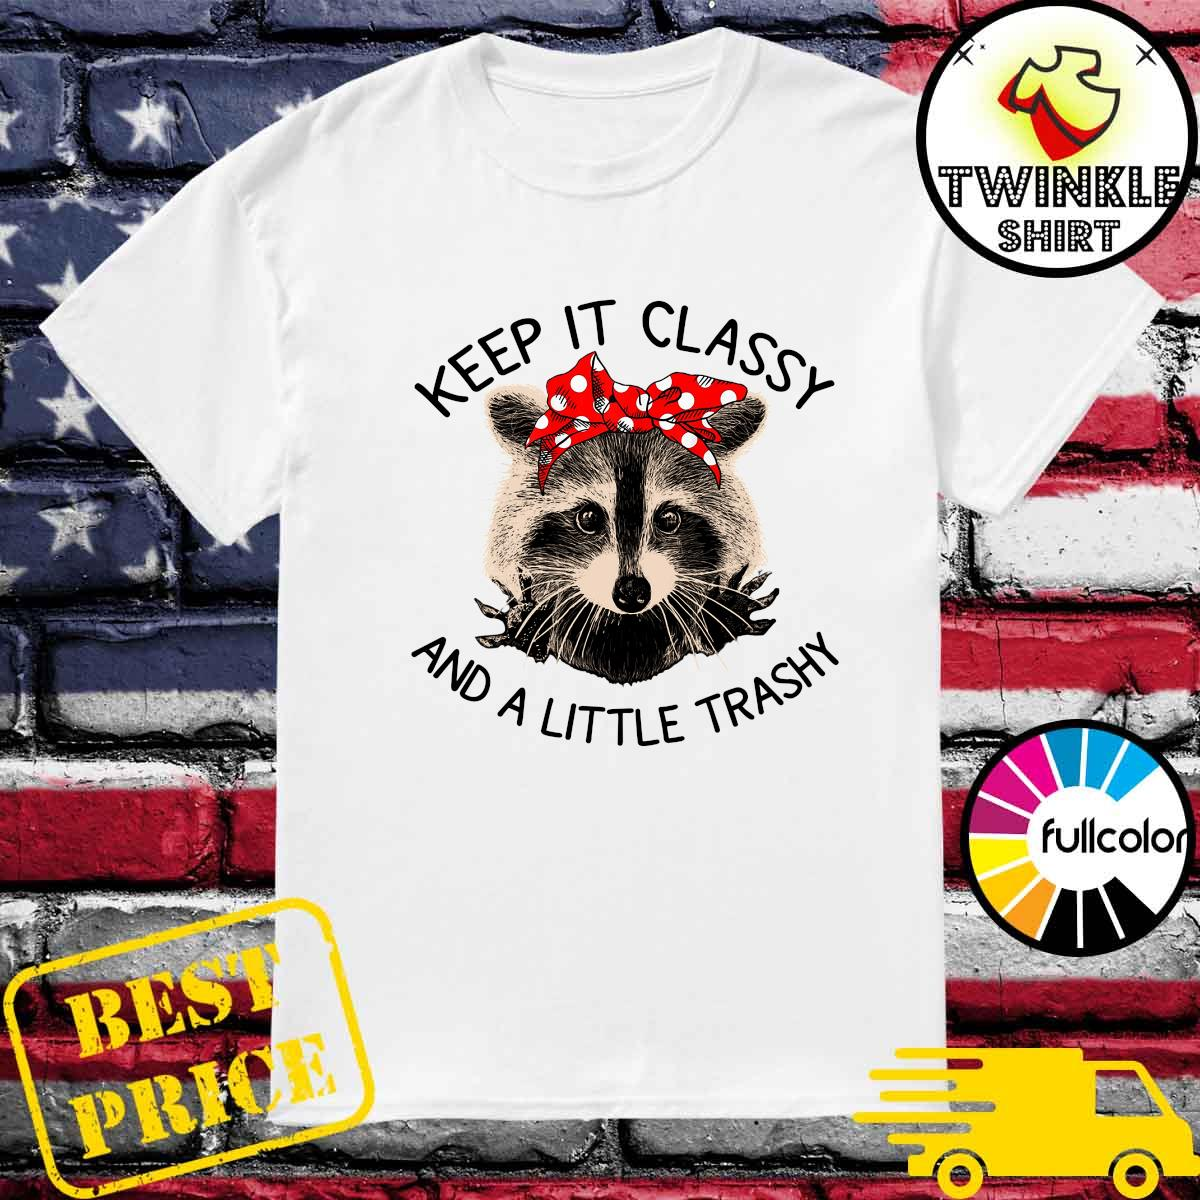 Official Raccoon Keep It Classy And A Little Trashy Shirt